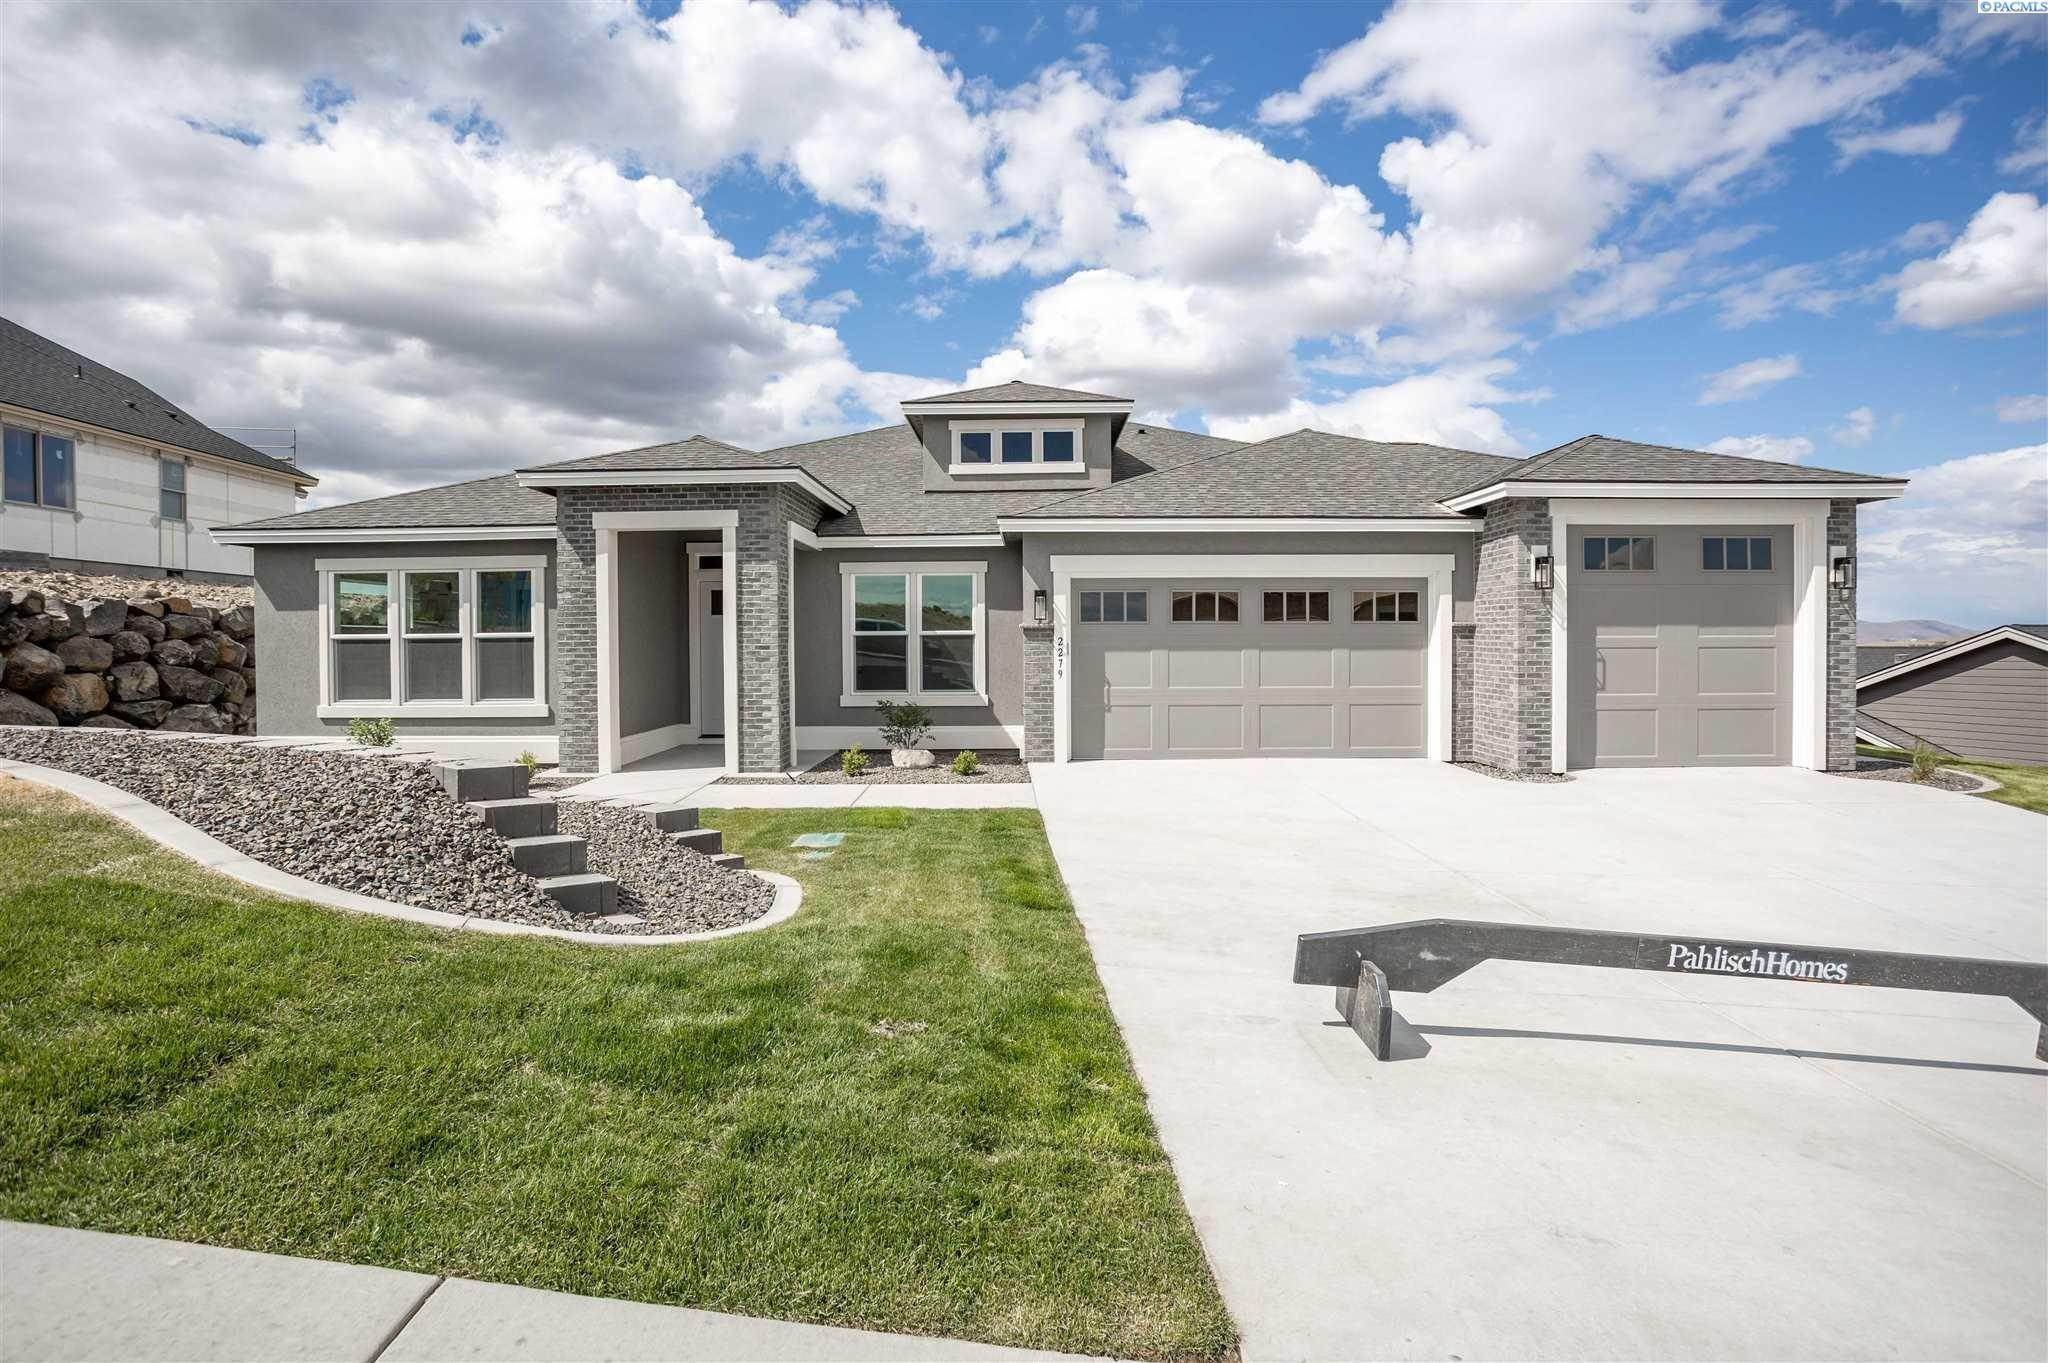 Single Family Homes for Sale at 2279 Skyview Loop Richland, Washington 99352 United States